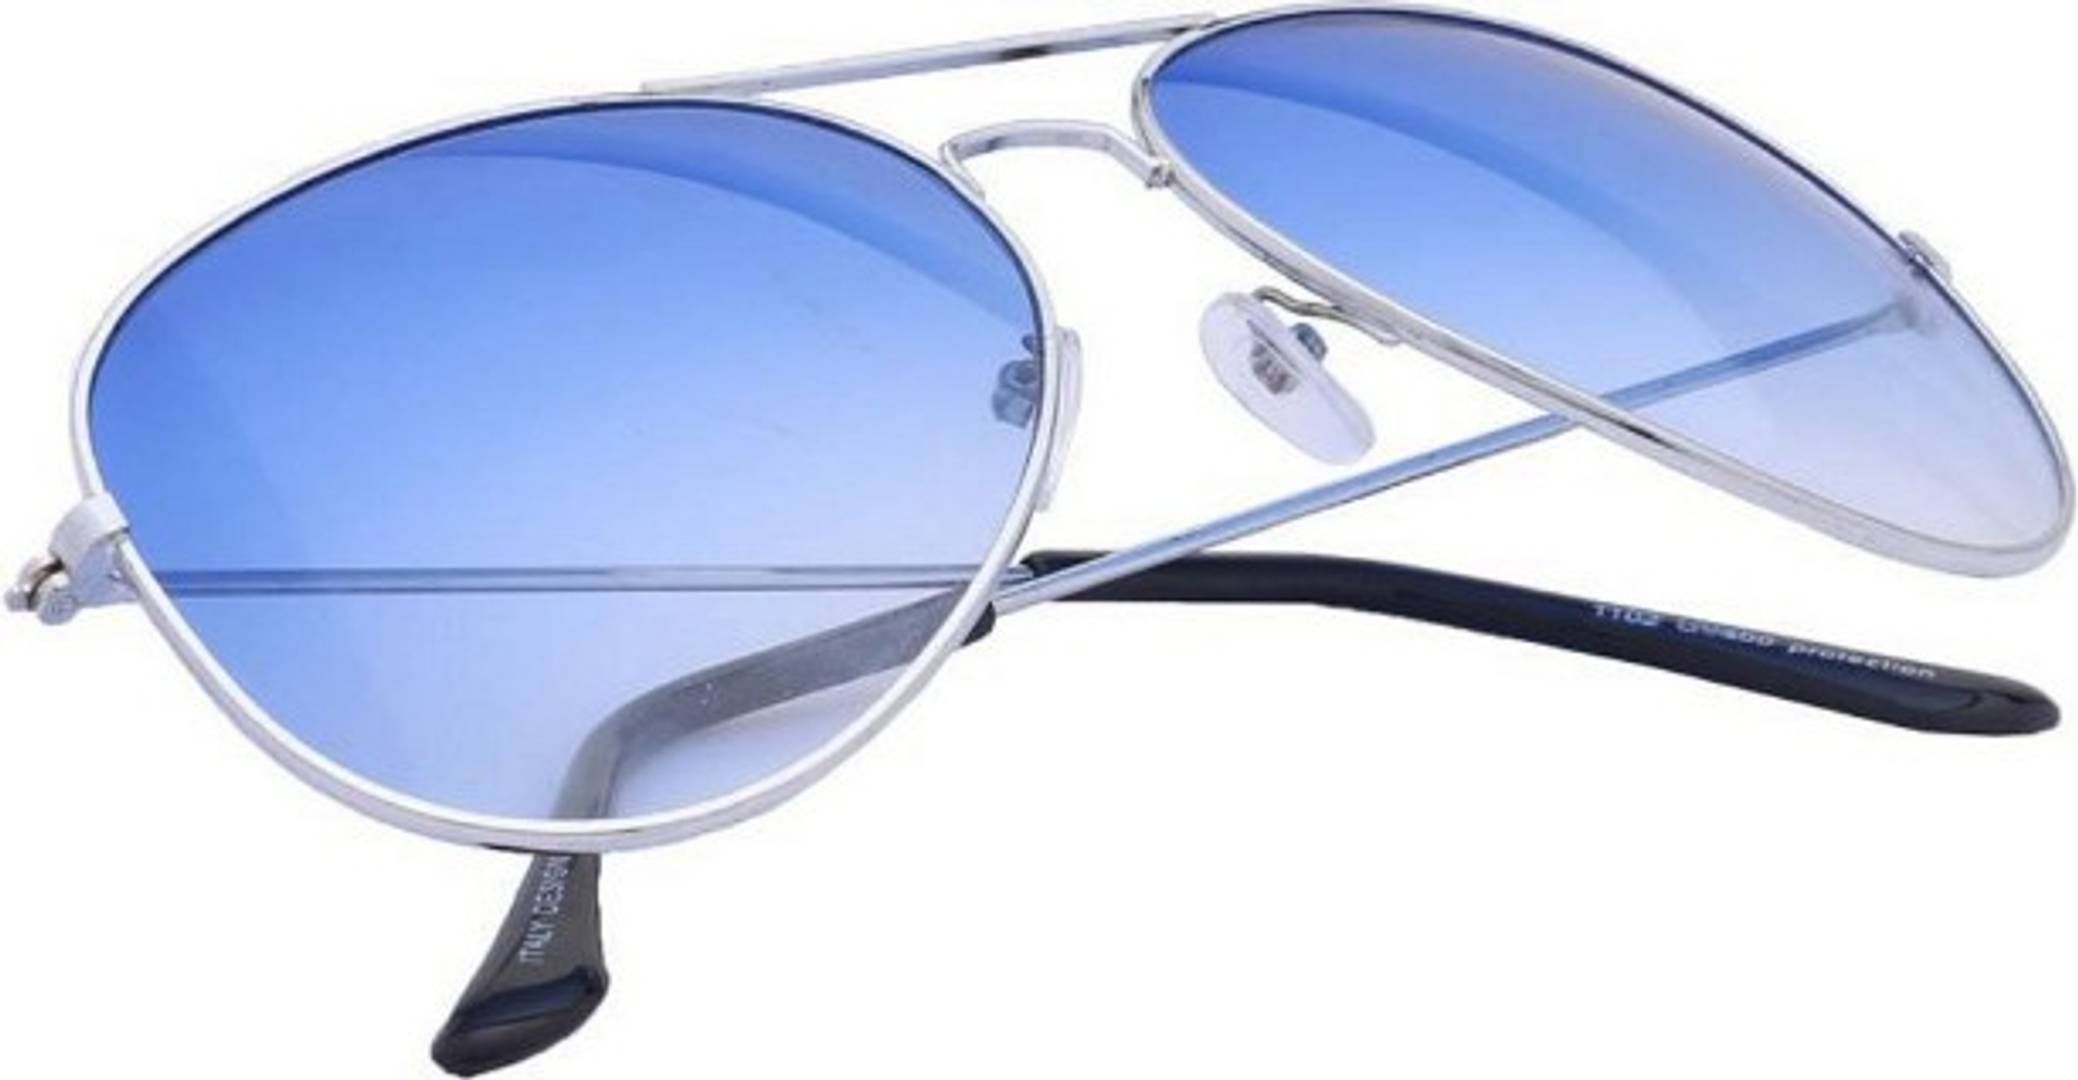 AVIATOR STYLE SUNGLASSES FOR WOMEN